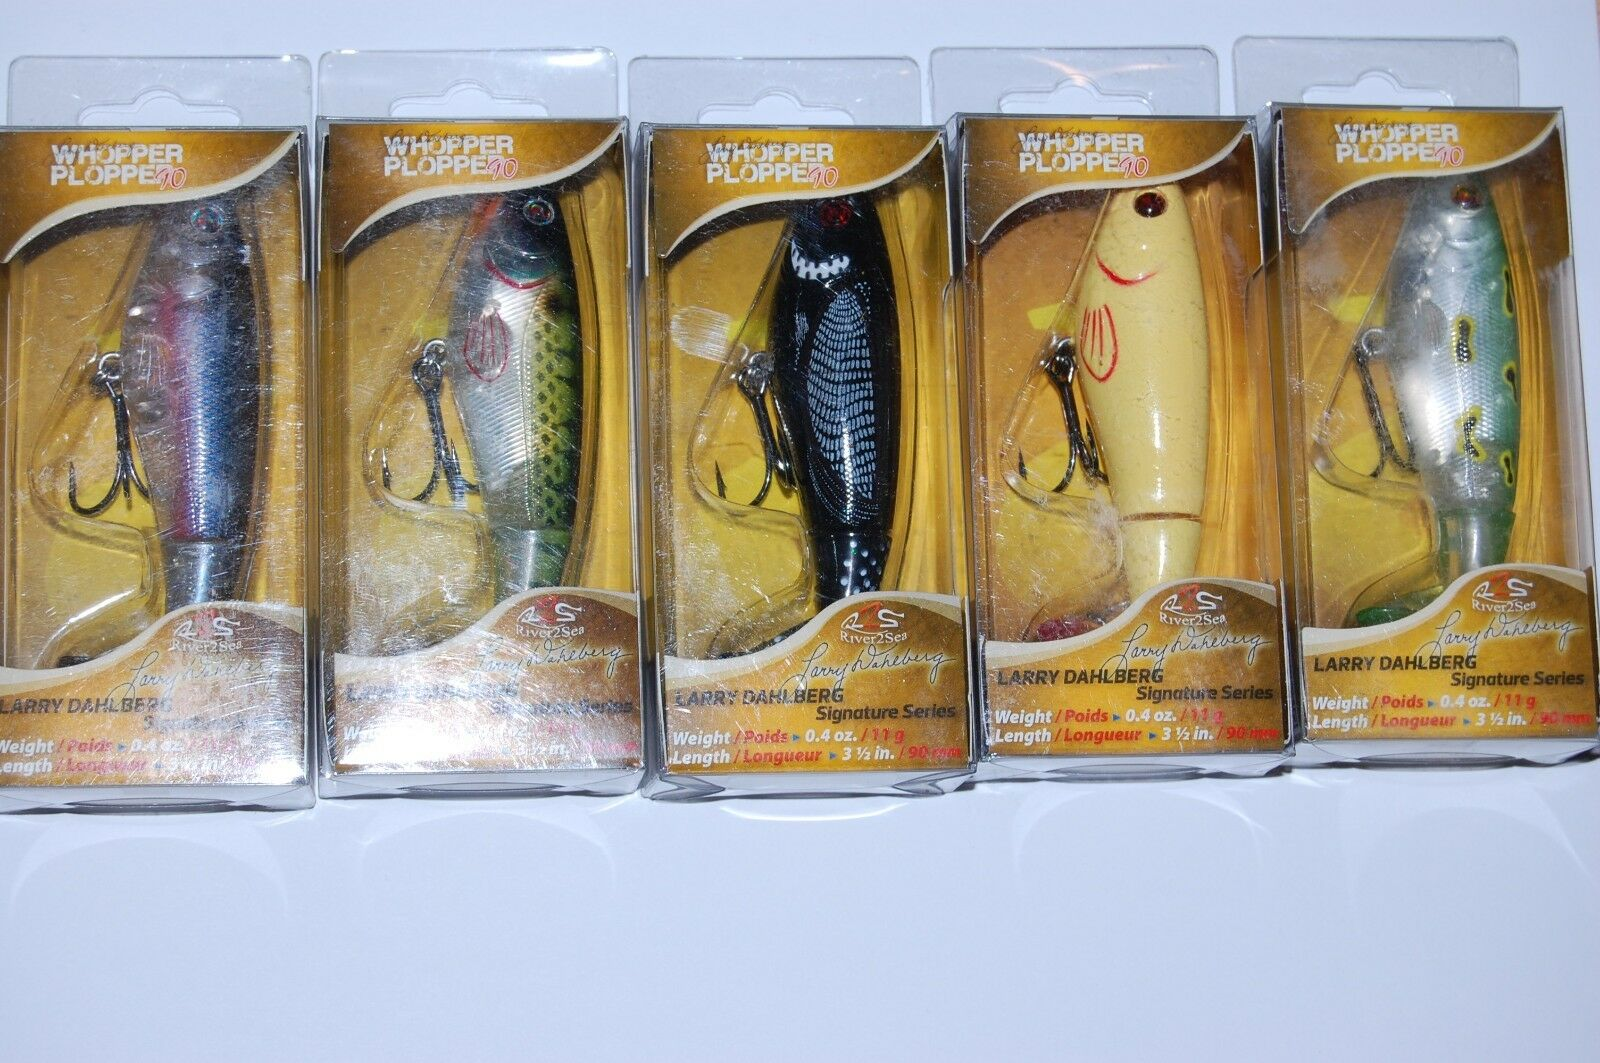 5 lures river2sea bass topwater whopper plopper 90 3 1  2  .4oz assortment  just for you